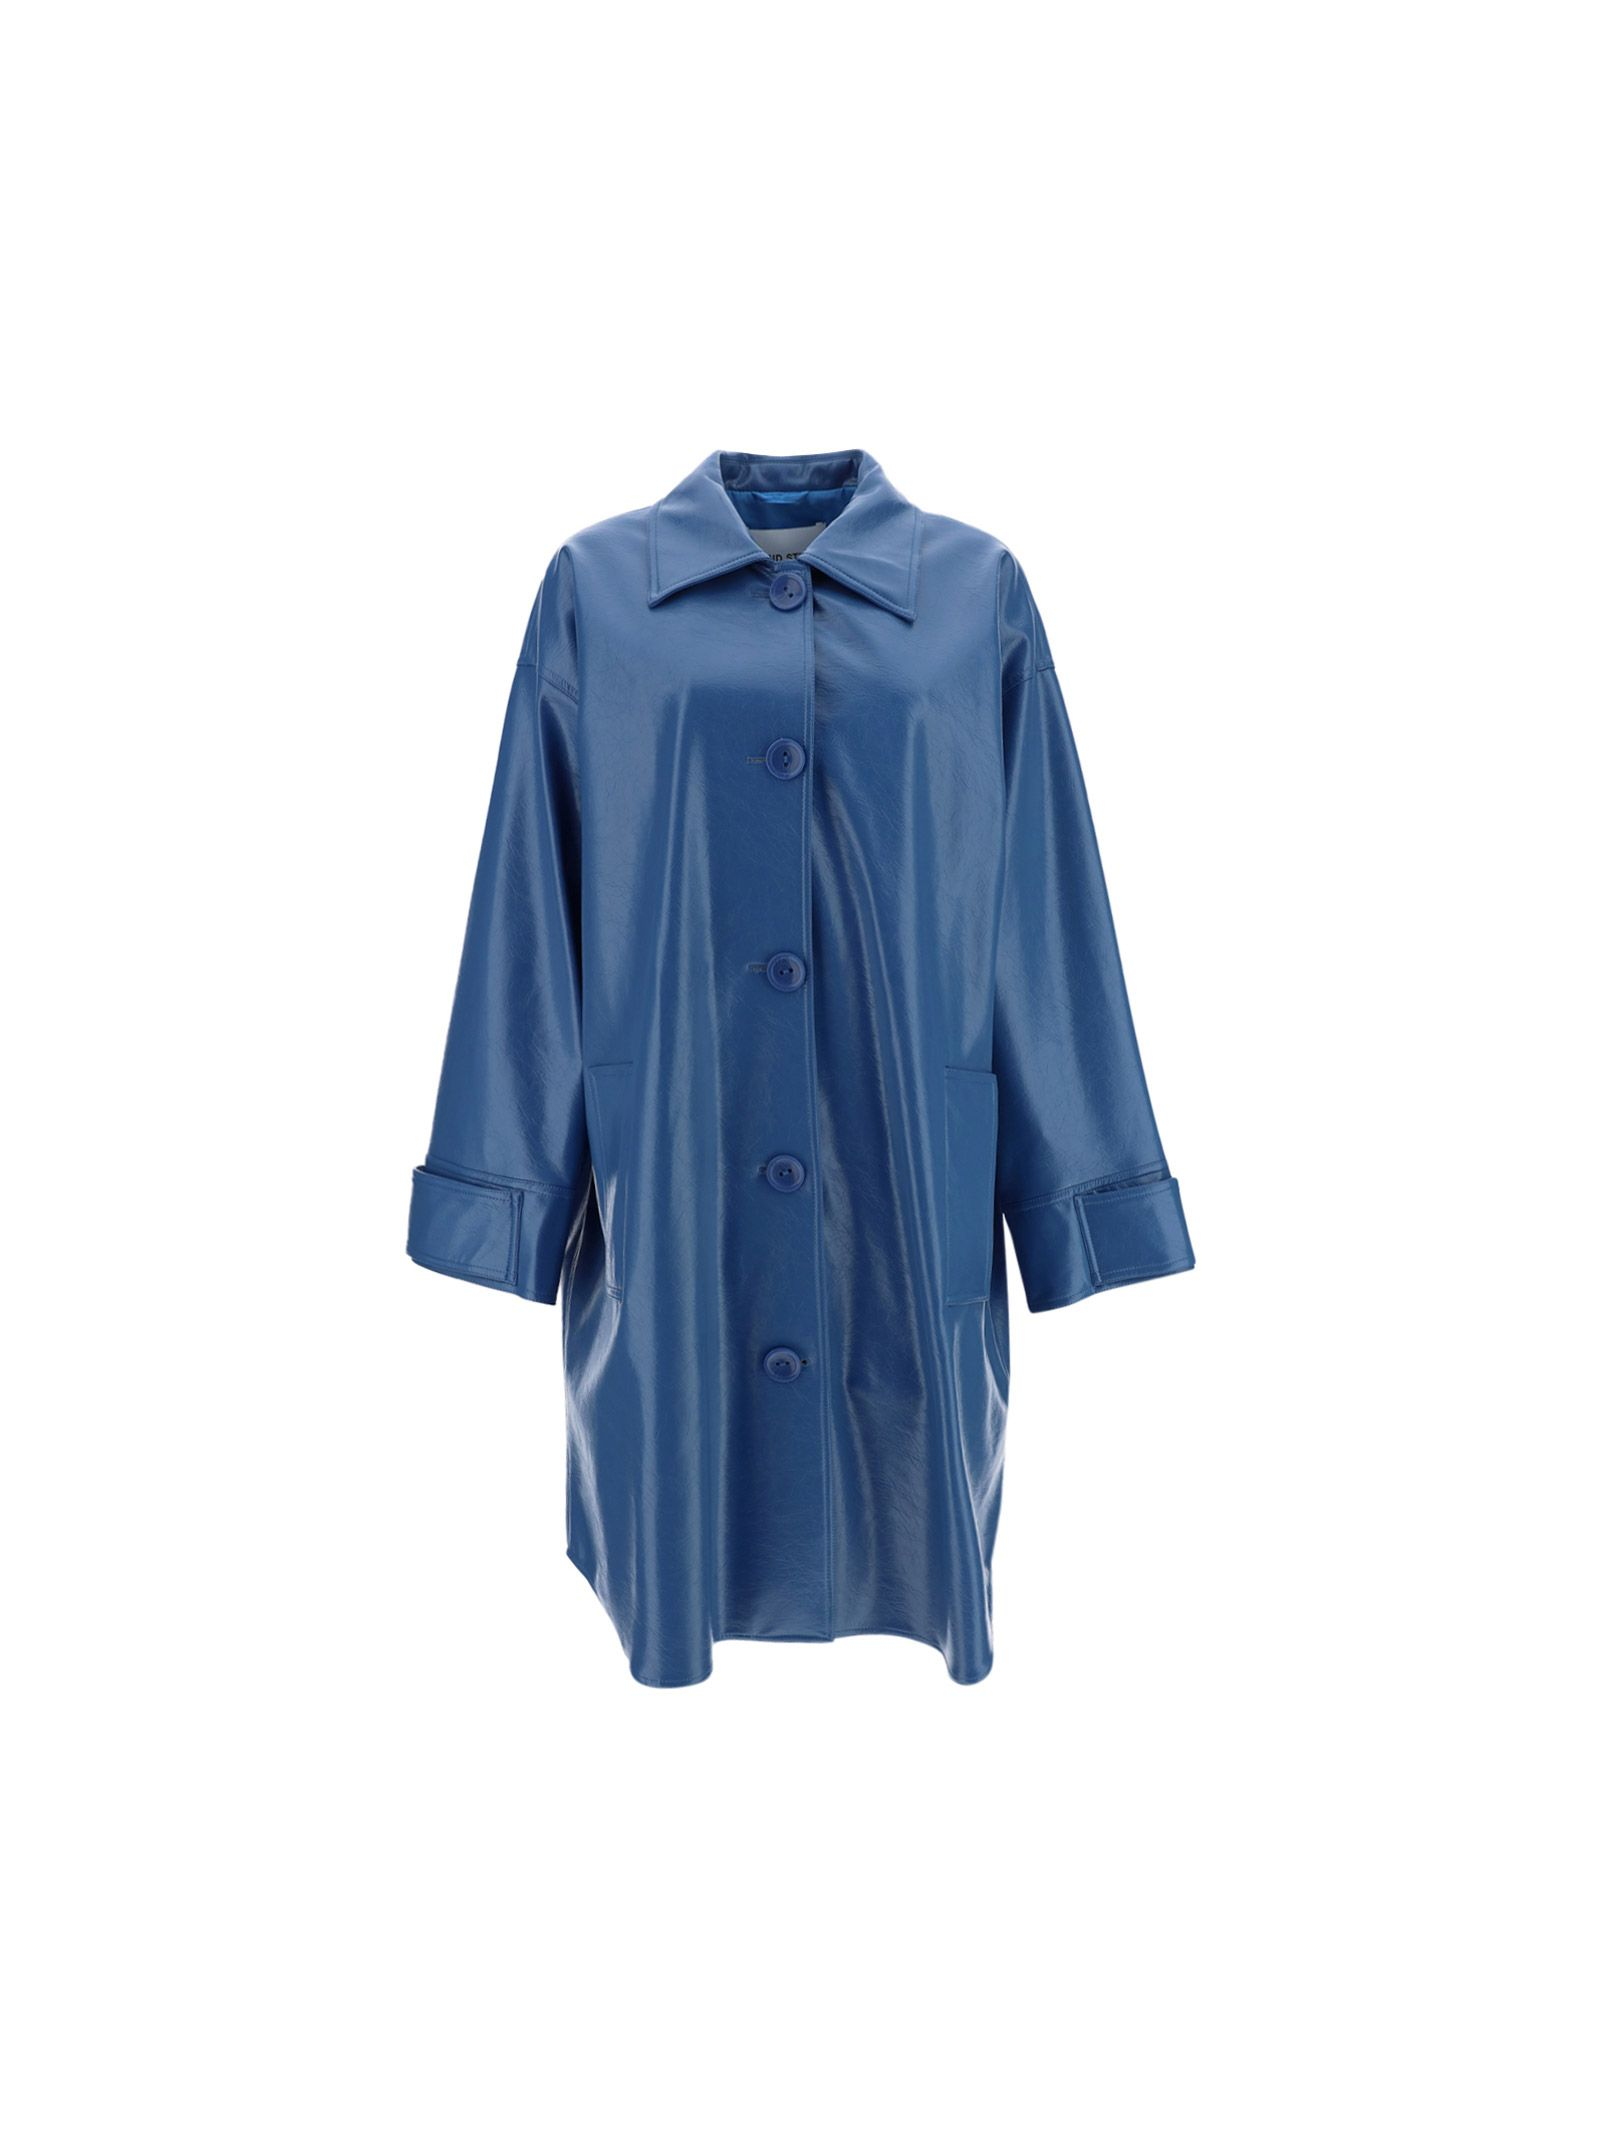 Stand Studio STAND WOMEN'S 61299822065000 BLUE OTHER MATERIALS COAT